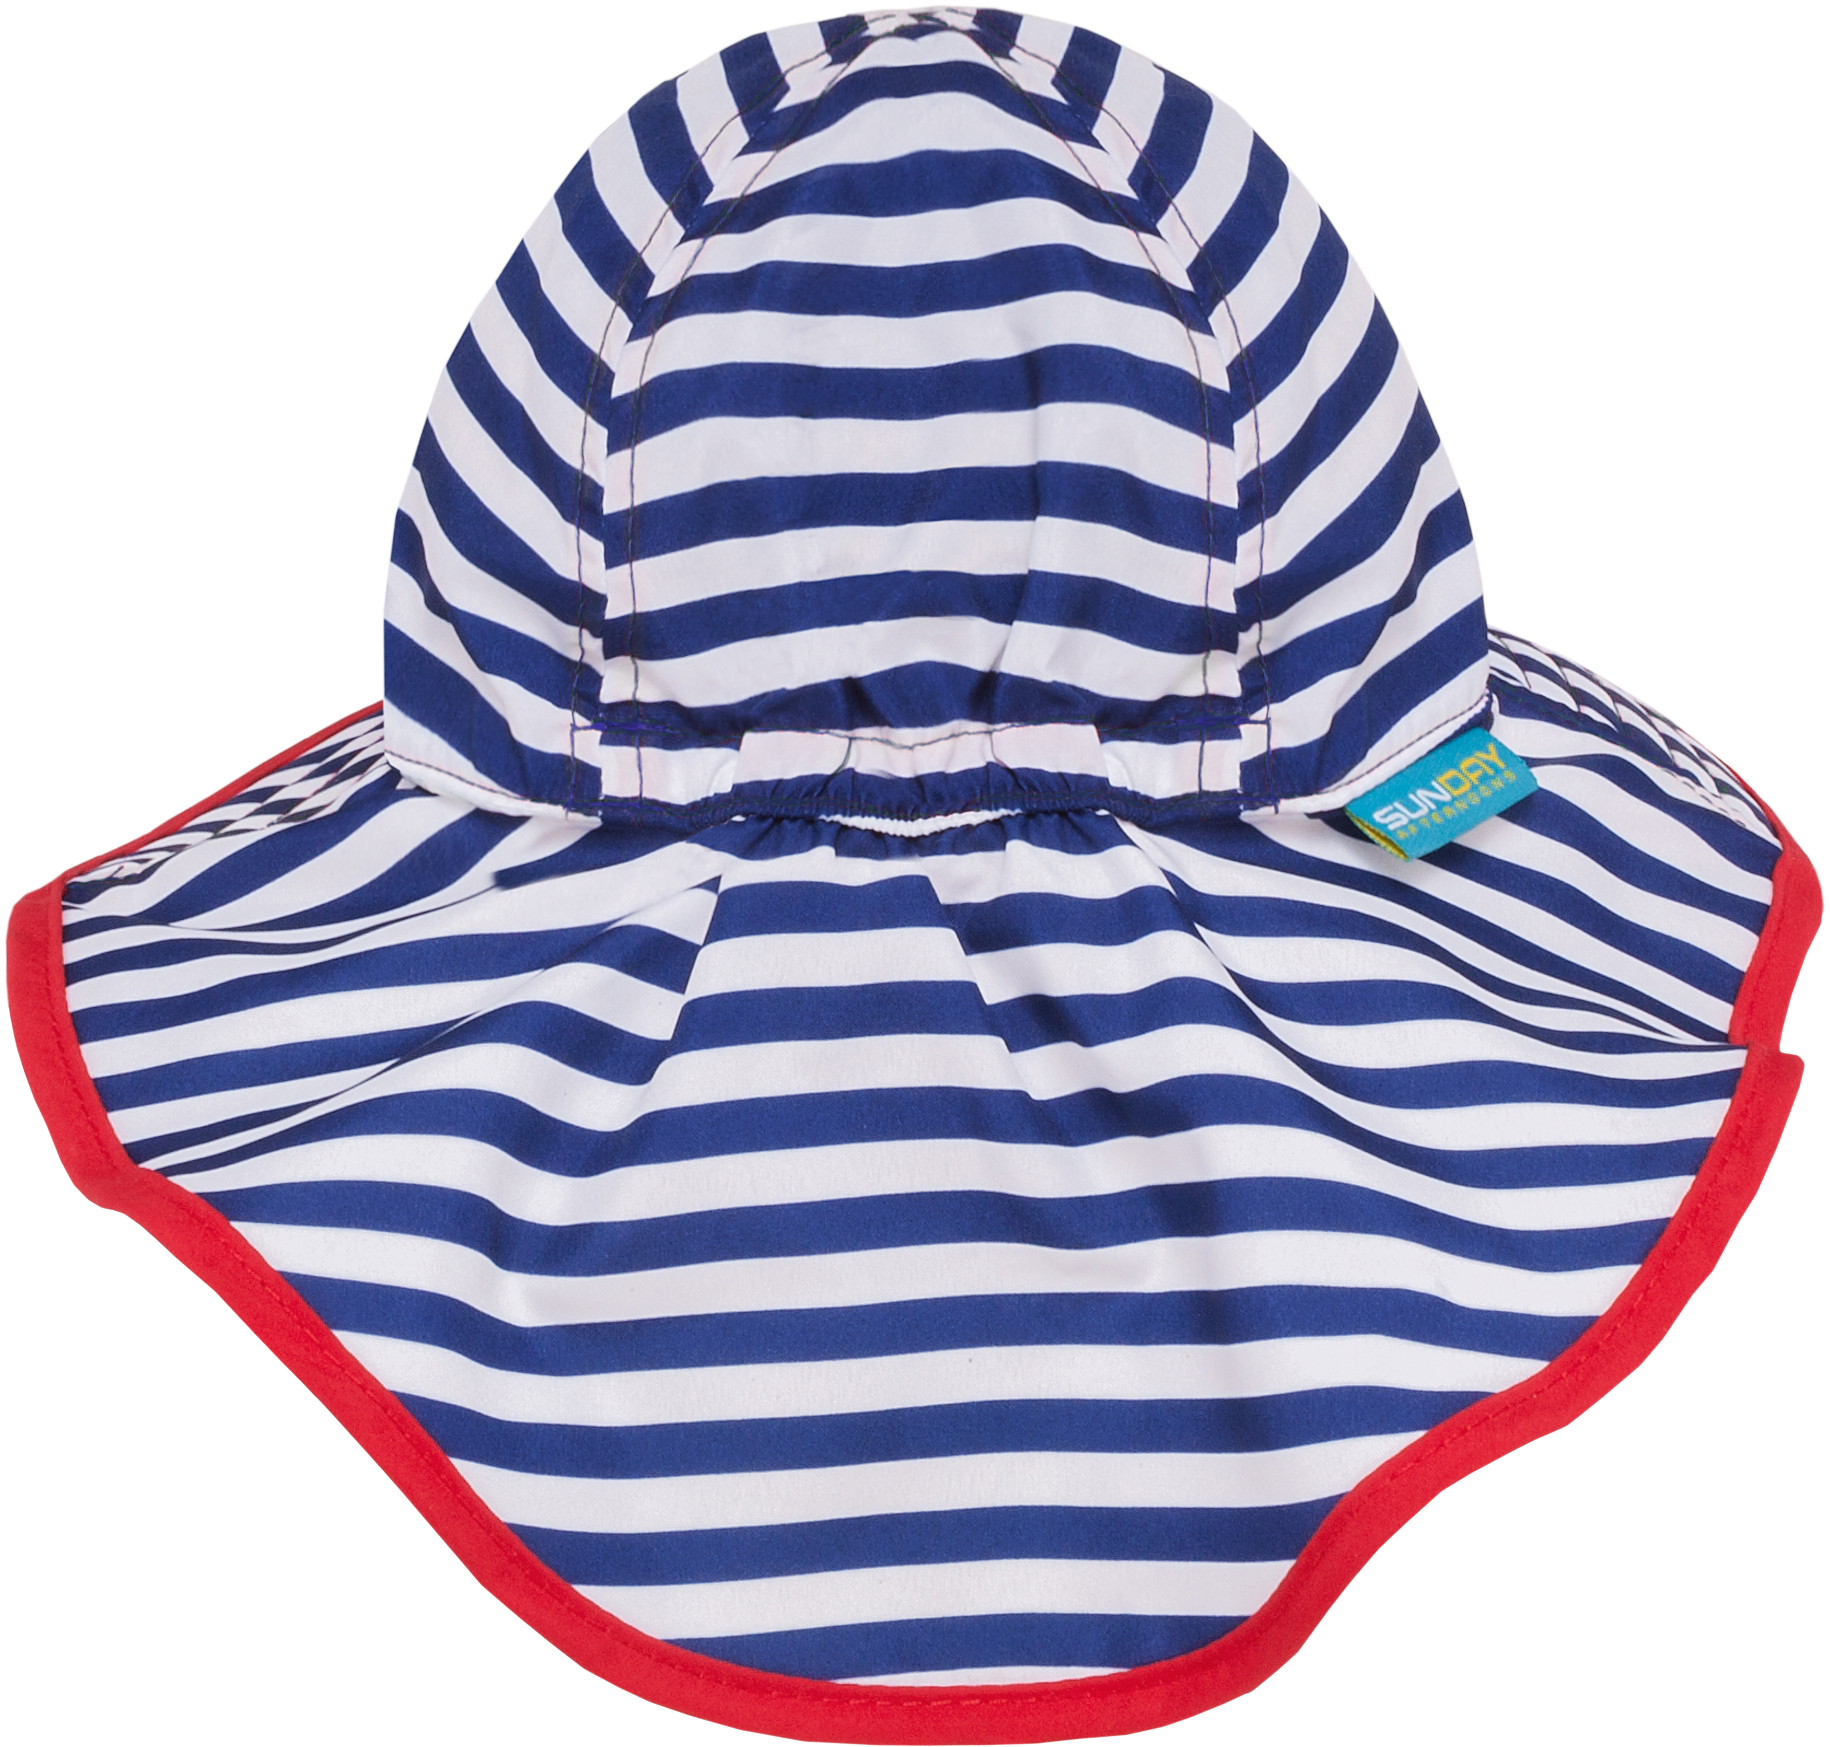 047bc5b04ac Sunday Afternoons Sunsprout Hat - Infants